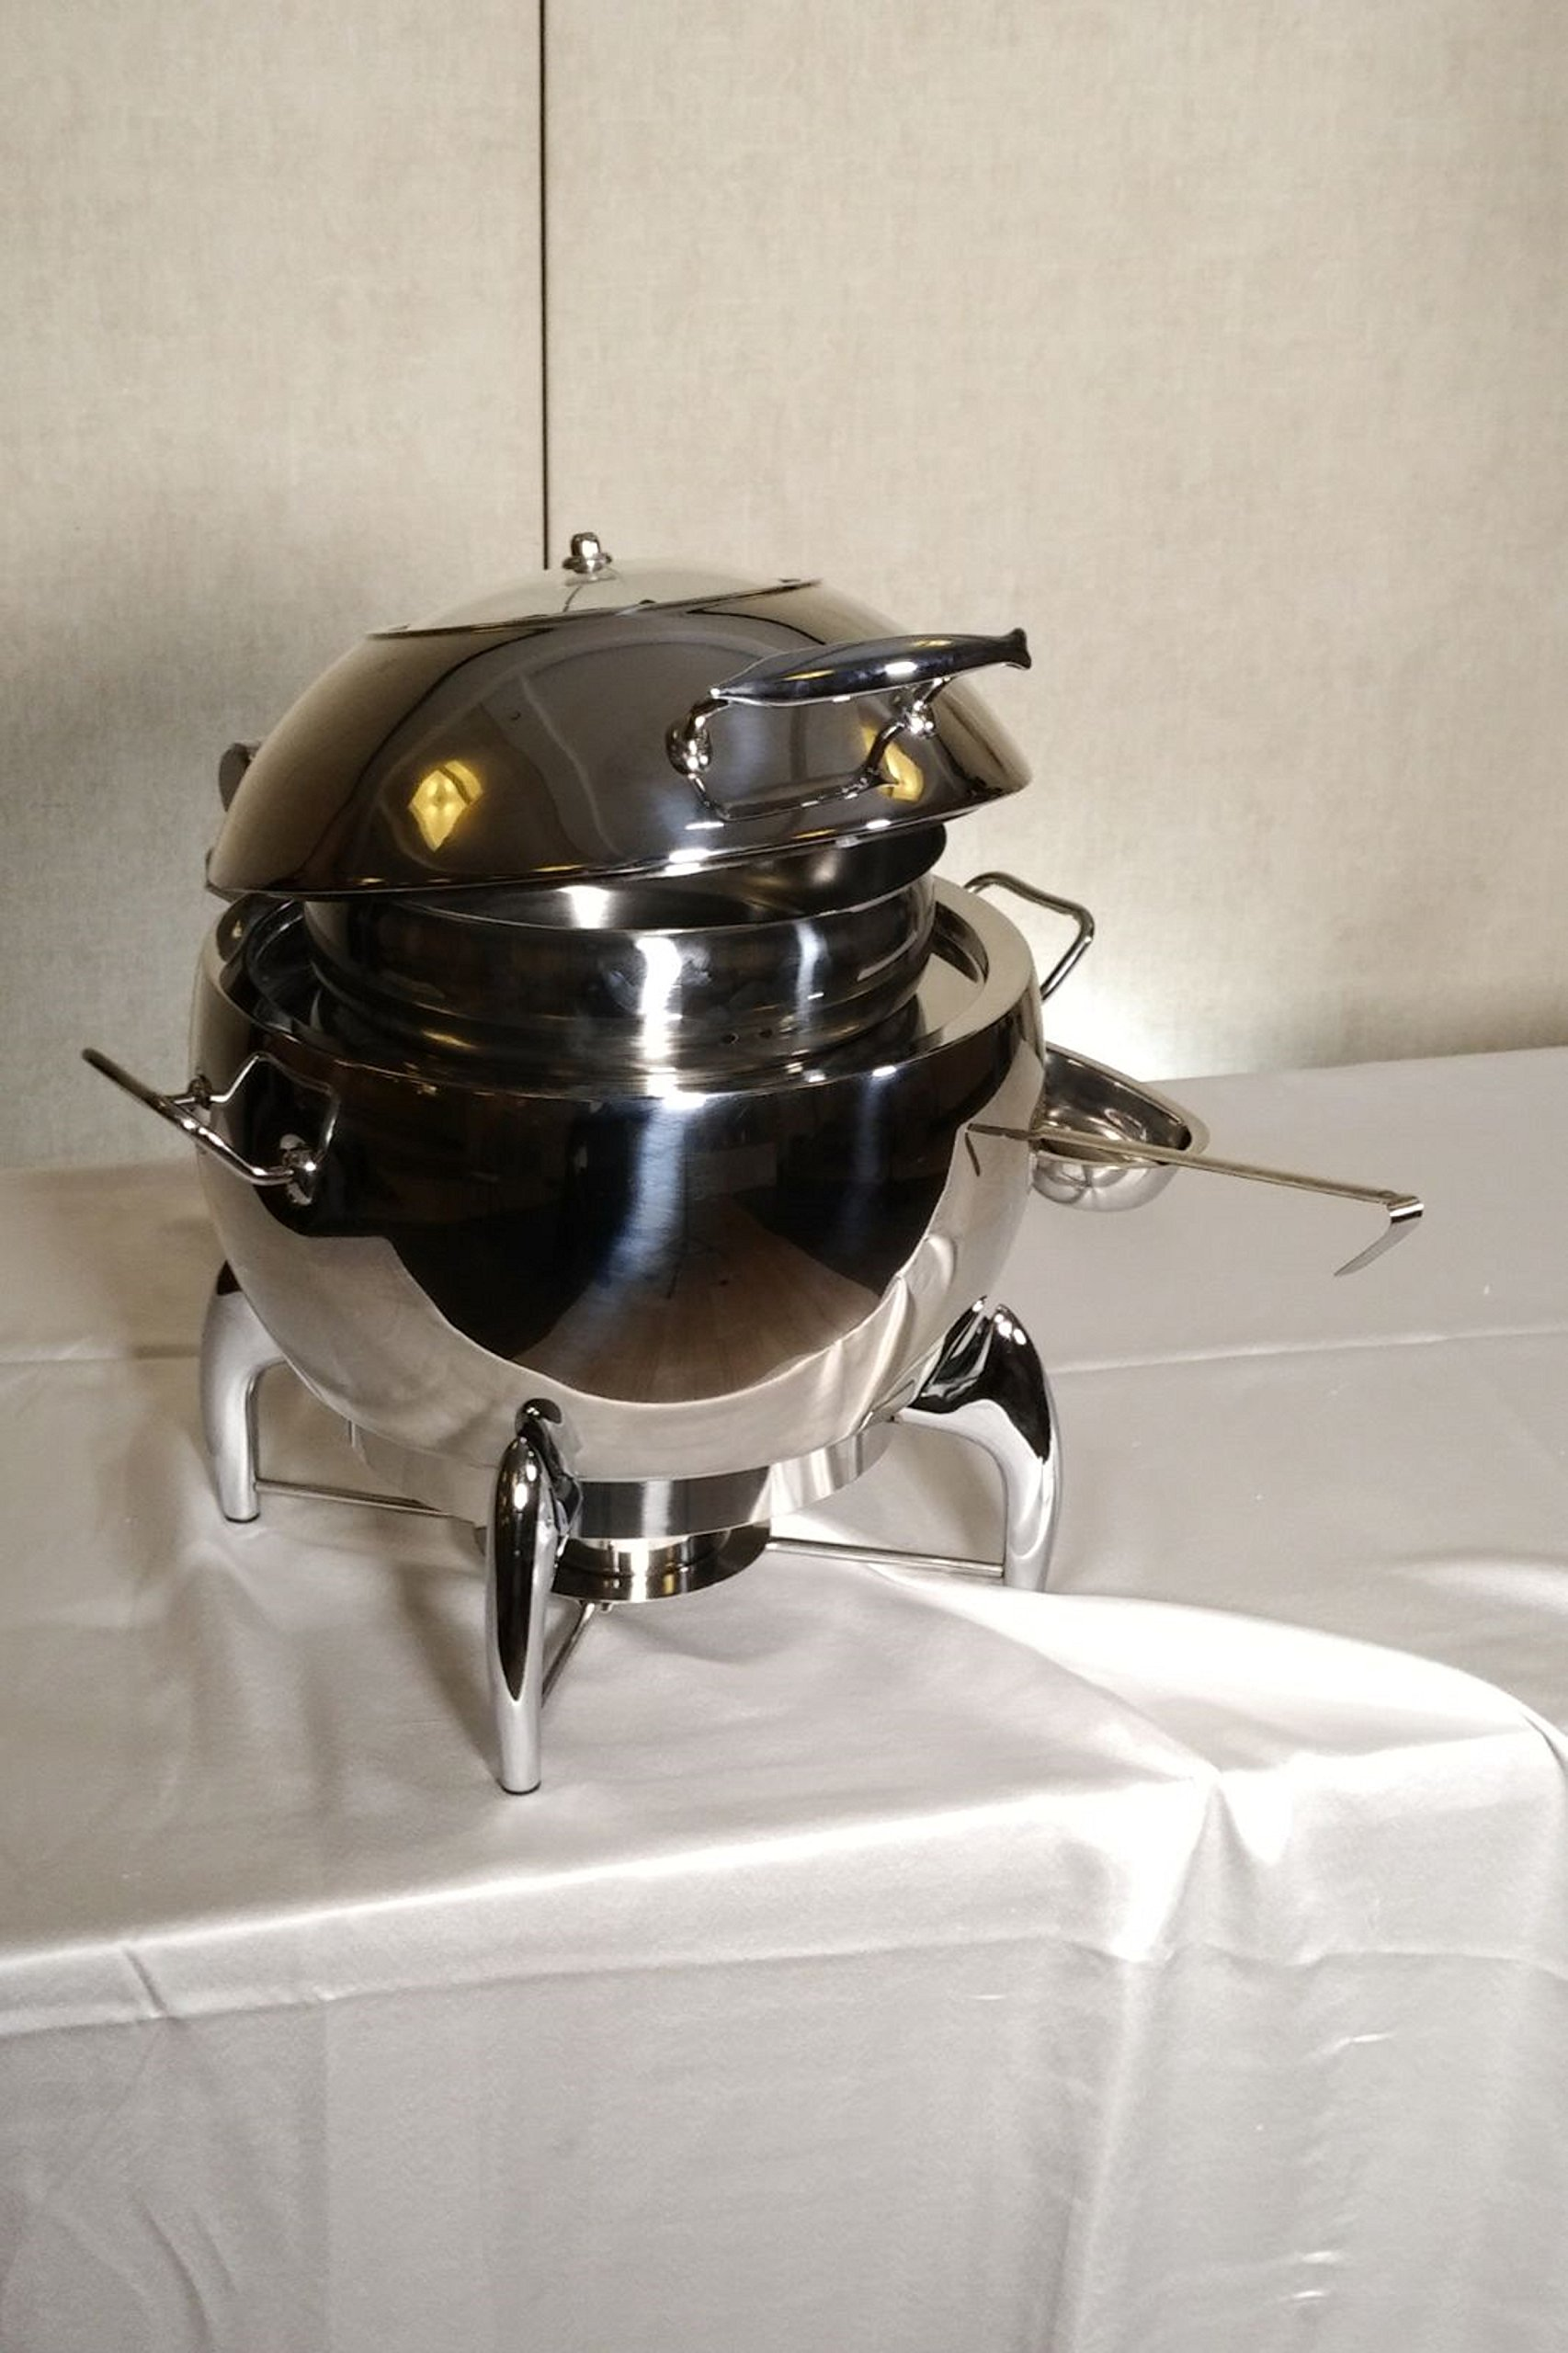 11 Qt. Stainless Steel Round Enclosed Soup Warmer Chafer with Hydraulic Hinged Glass Dome Window Cover, Chafing Dish, stainless steel H/D base, includes fuel holder, durable long-lasting,